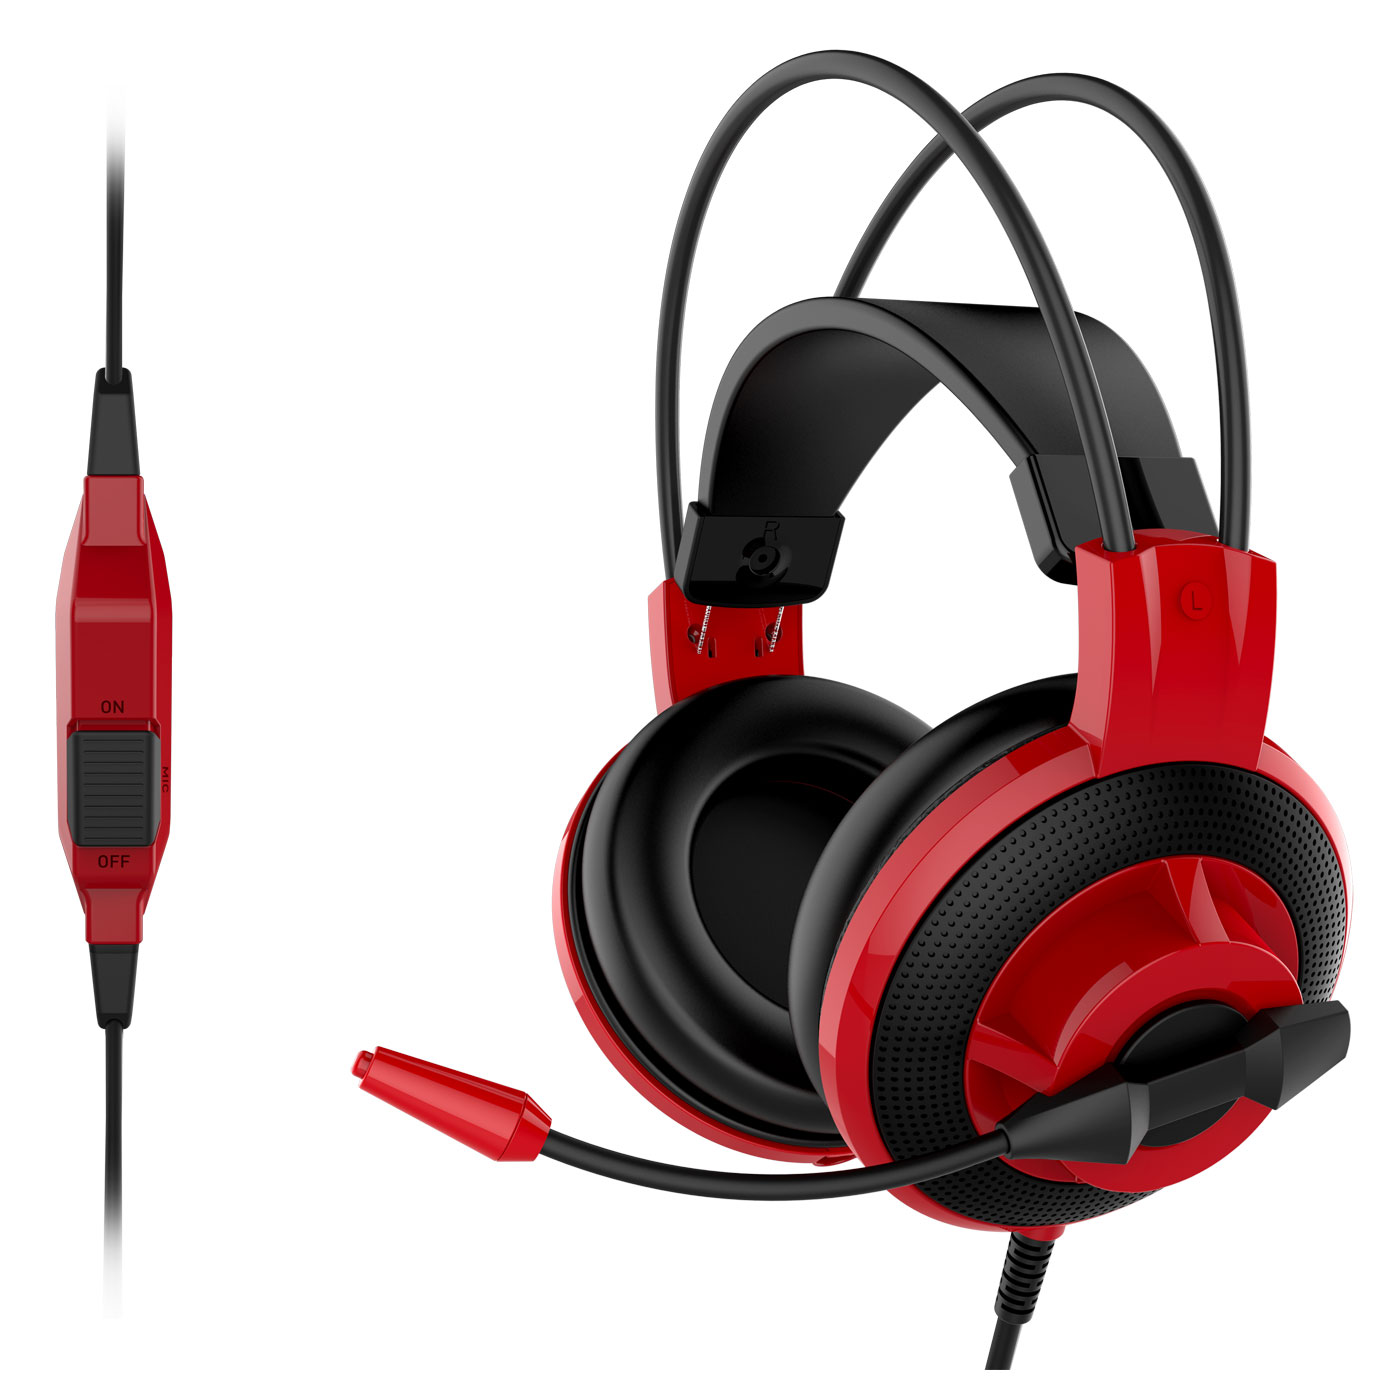 CASQUE MSI DS501 GAMING HEADSET